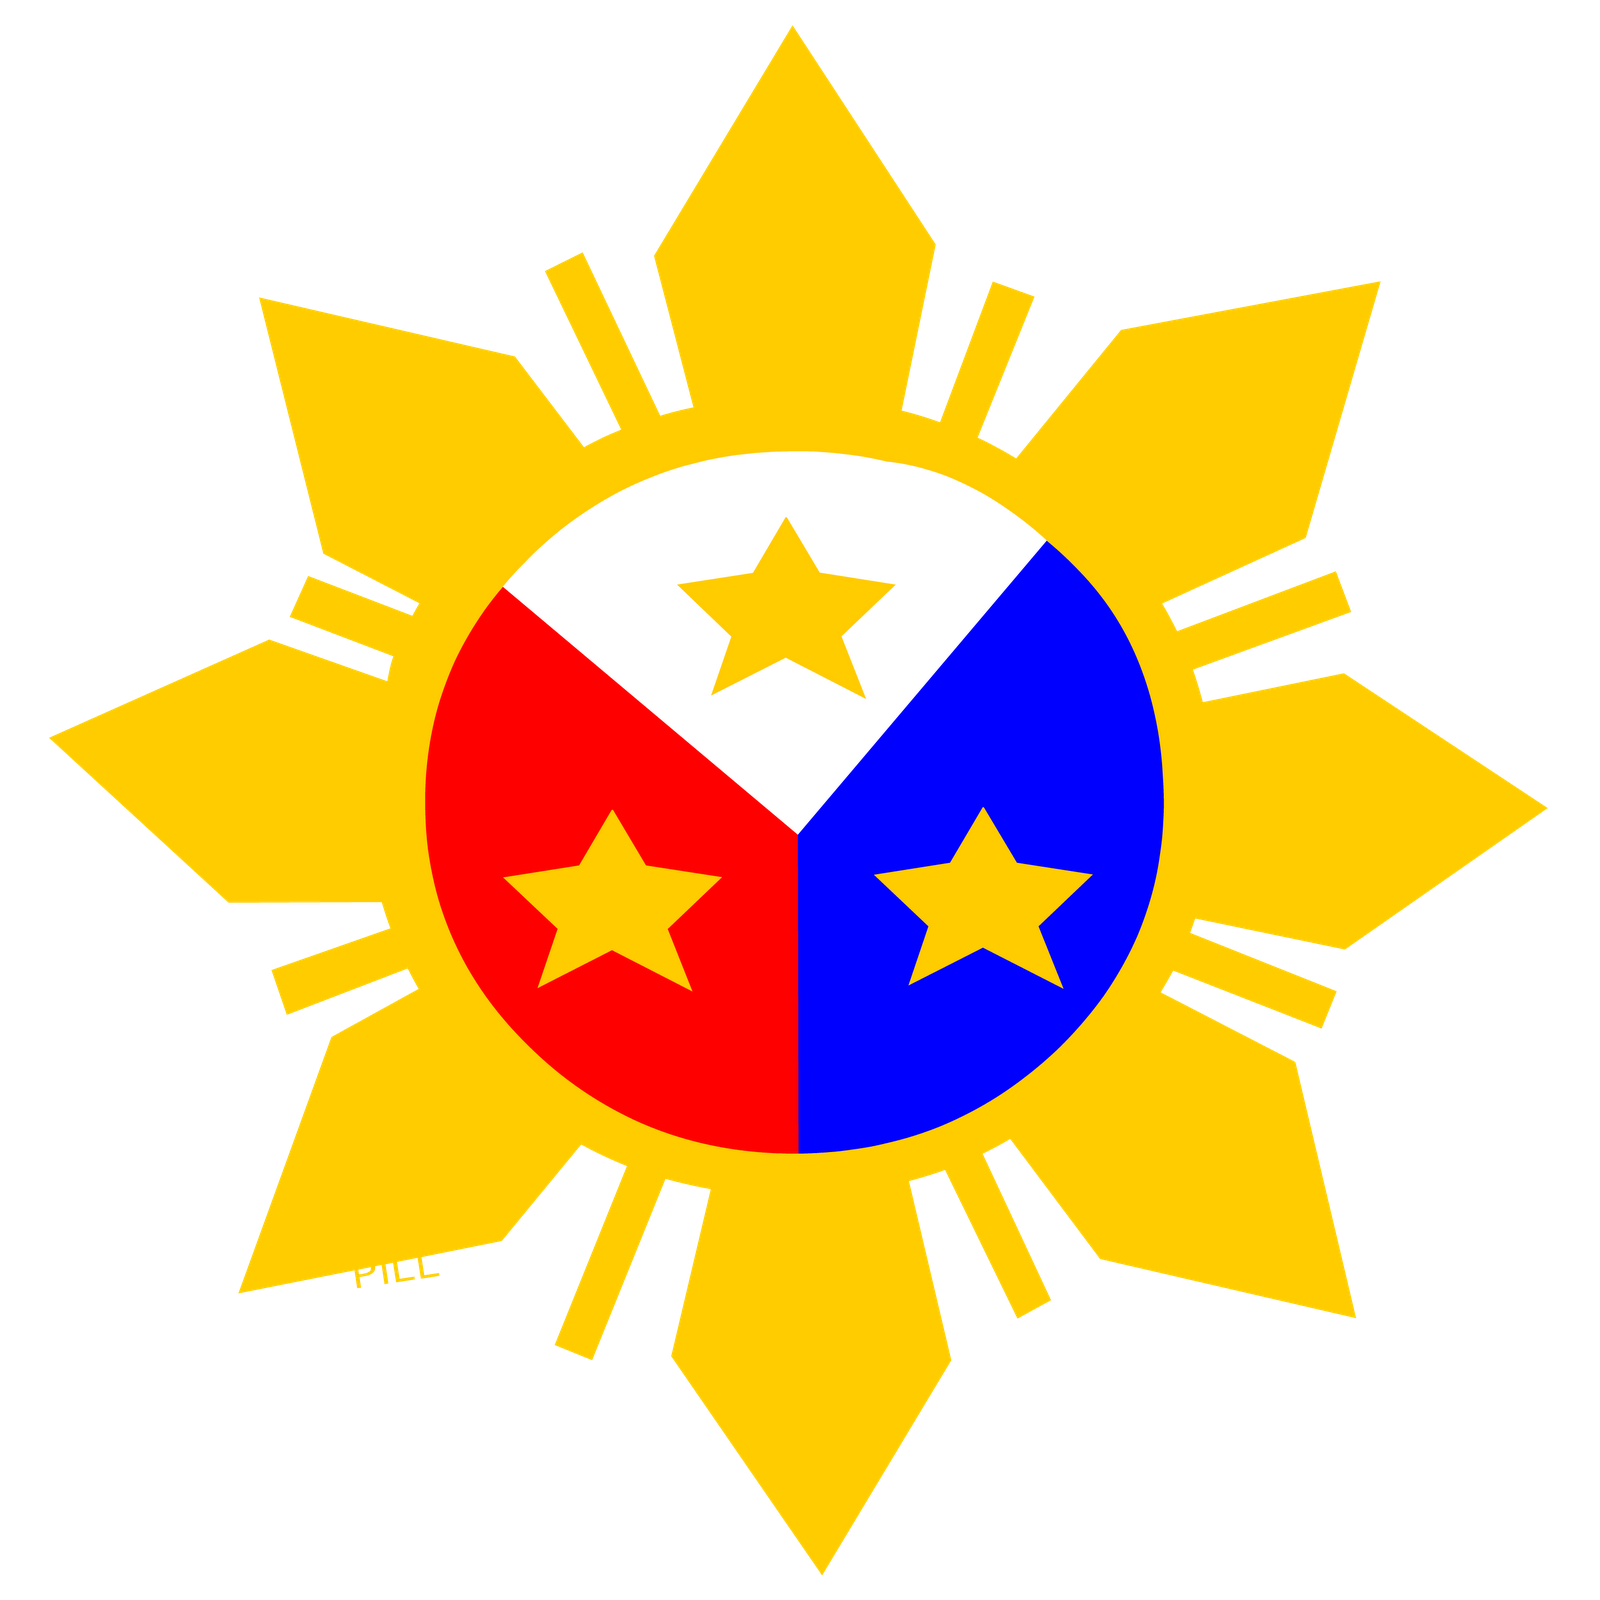 Filipino flag star clipart jpg freeuse download 28+ Collection of Philippine Clipart | High quality, free cliparts ... jpg freeuse download